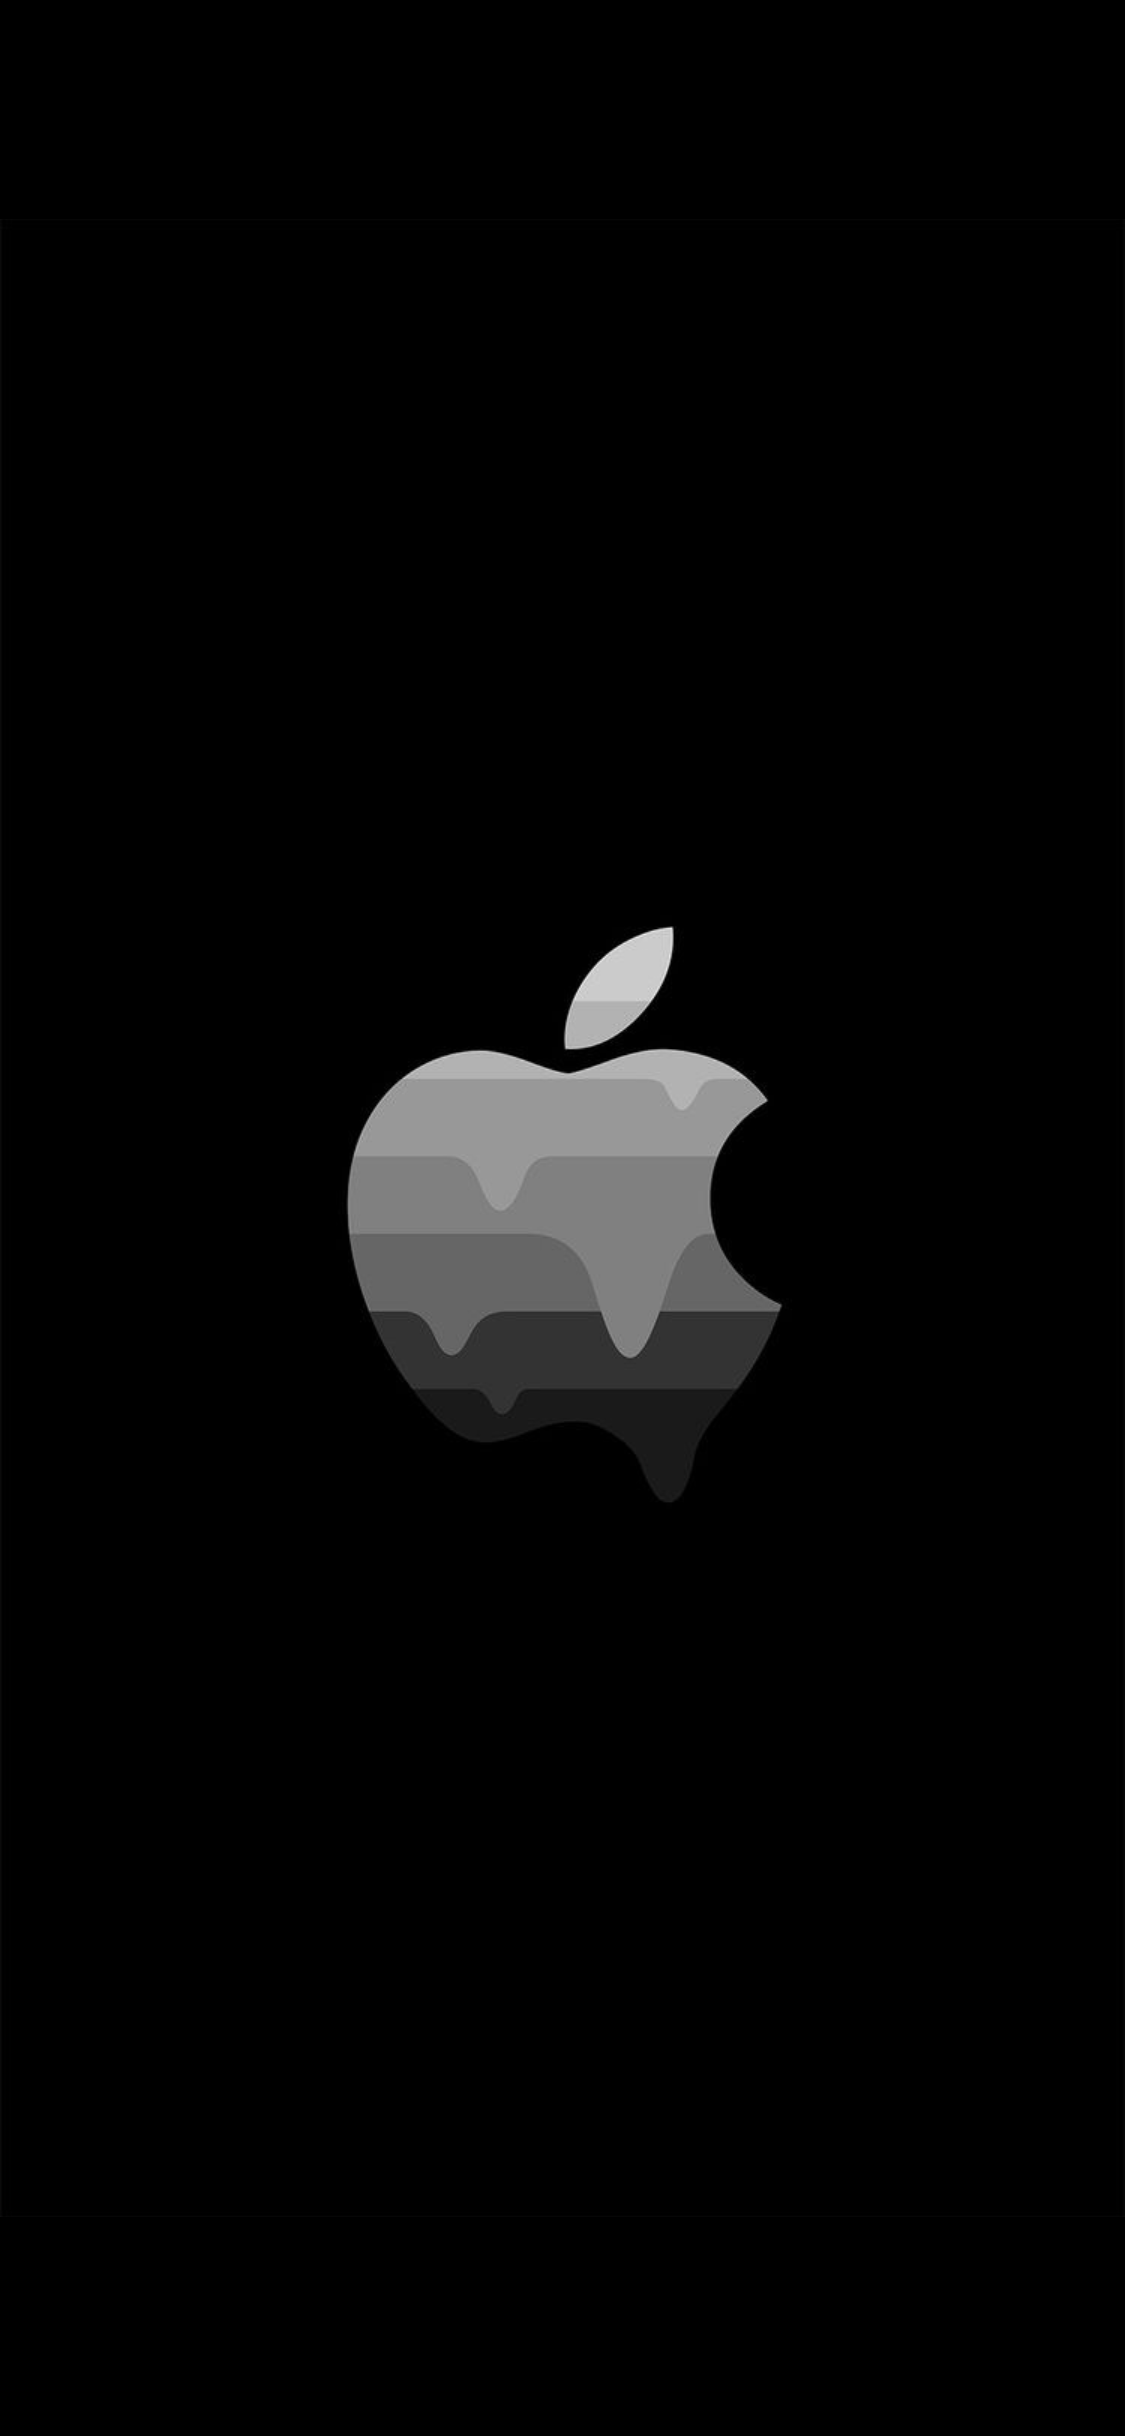 Pin by privaterayan on Sick wallpapers Apple wallpaper